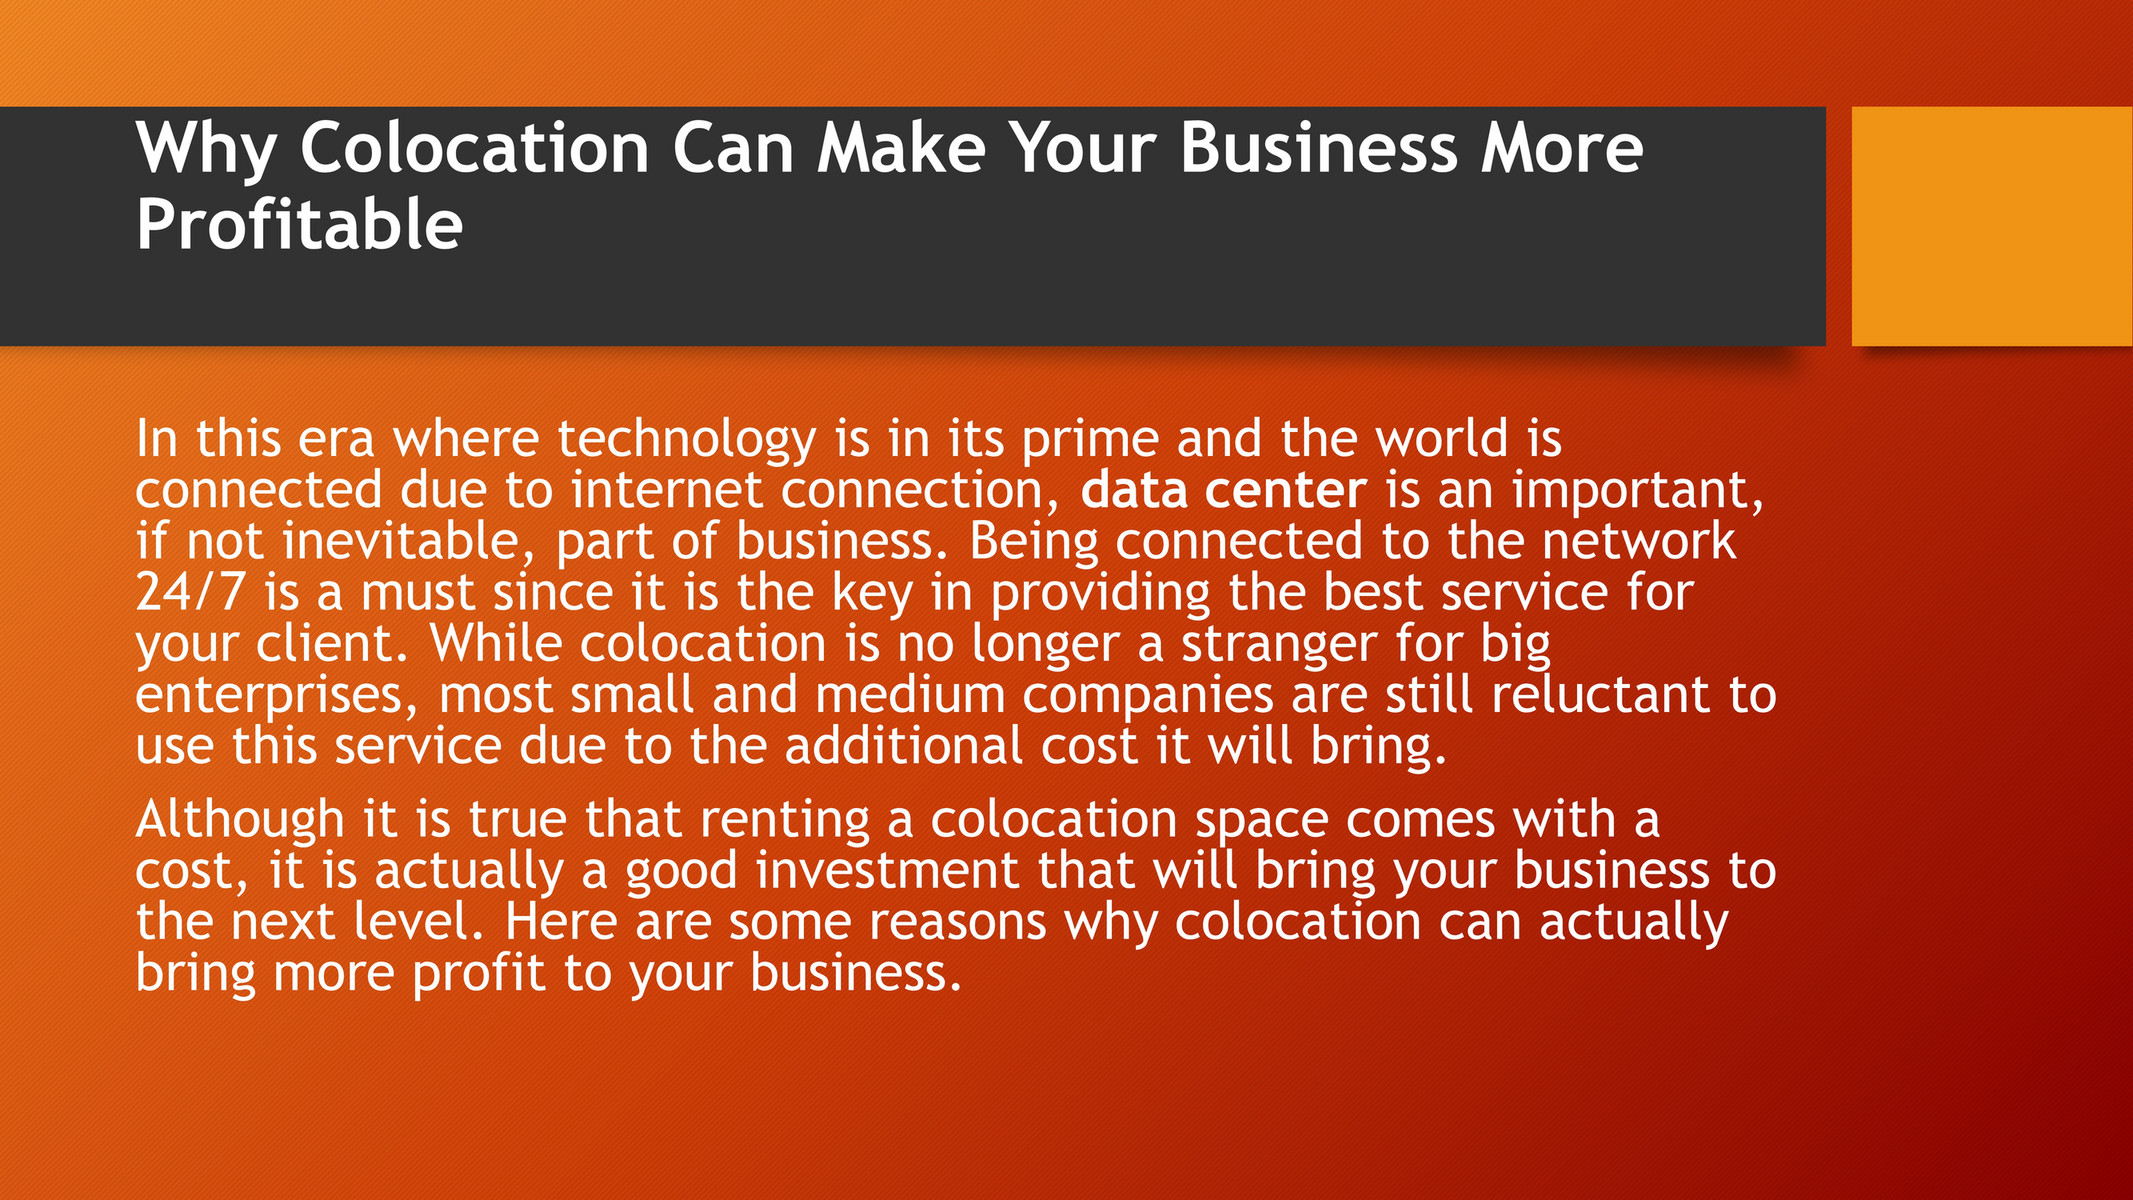 Buenoseo - Why Colocation Can Make Your Business More Profitable - Page 1 - Created with Publitas.com